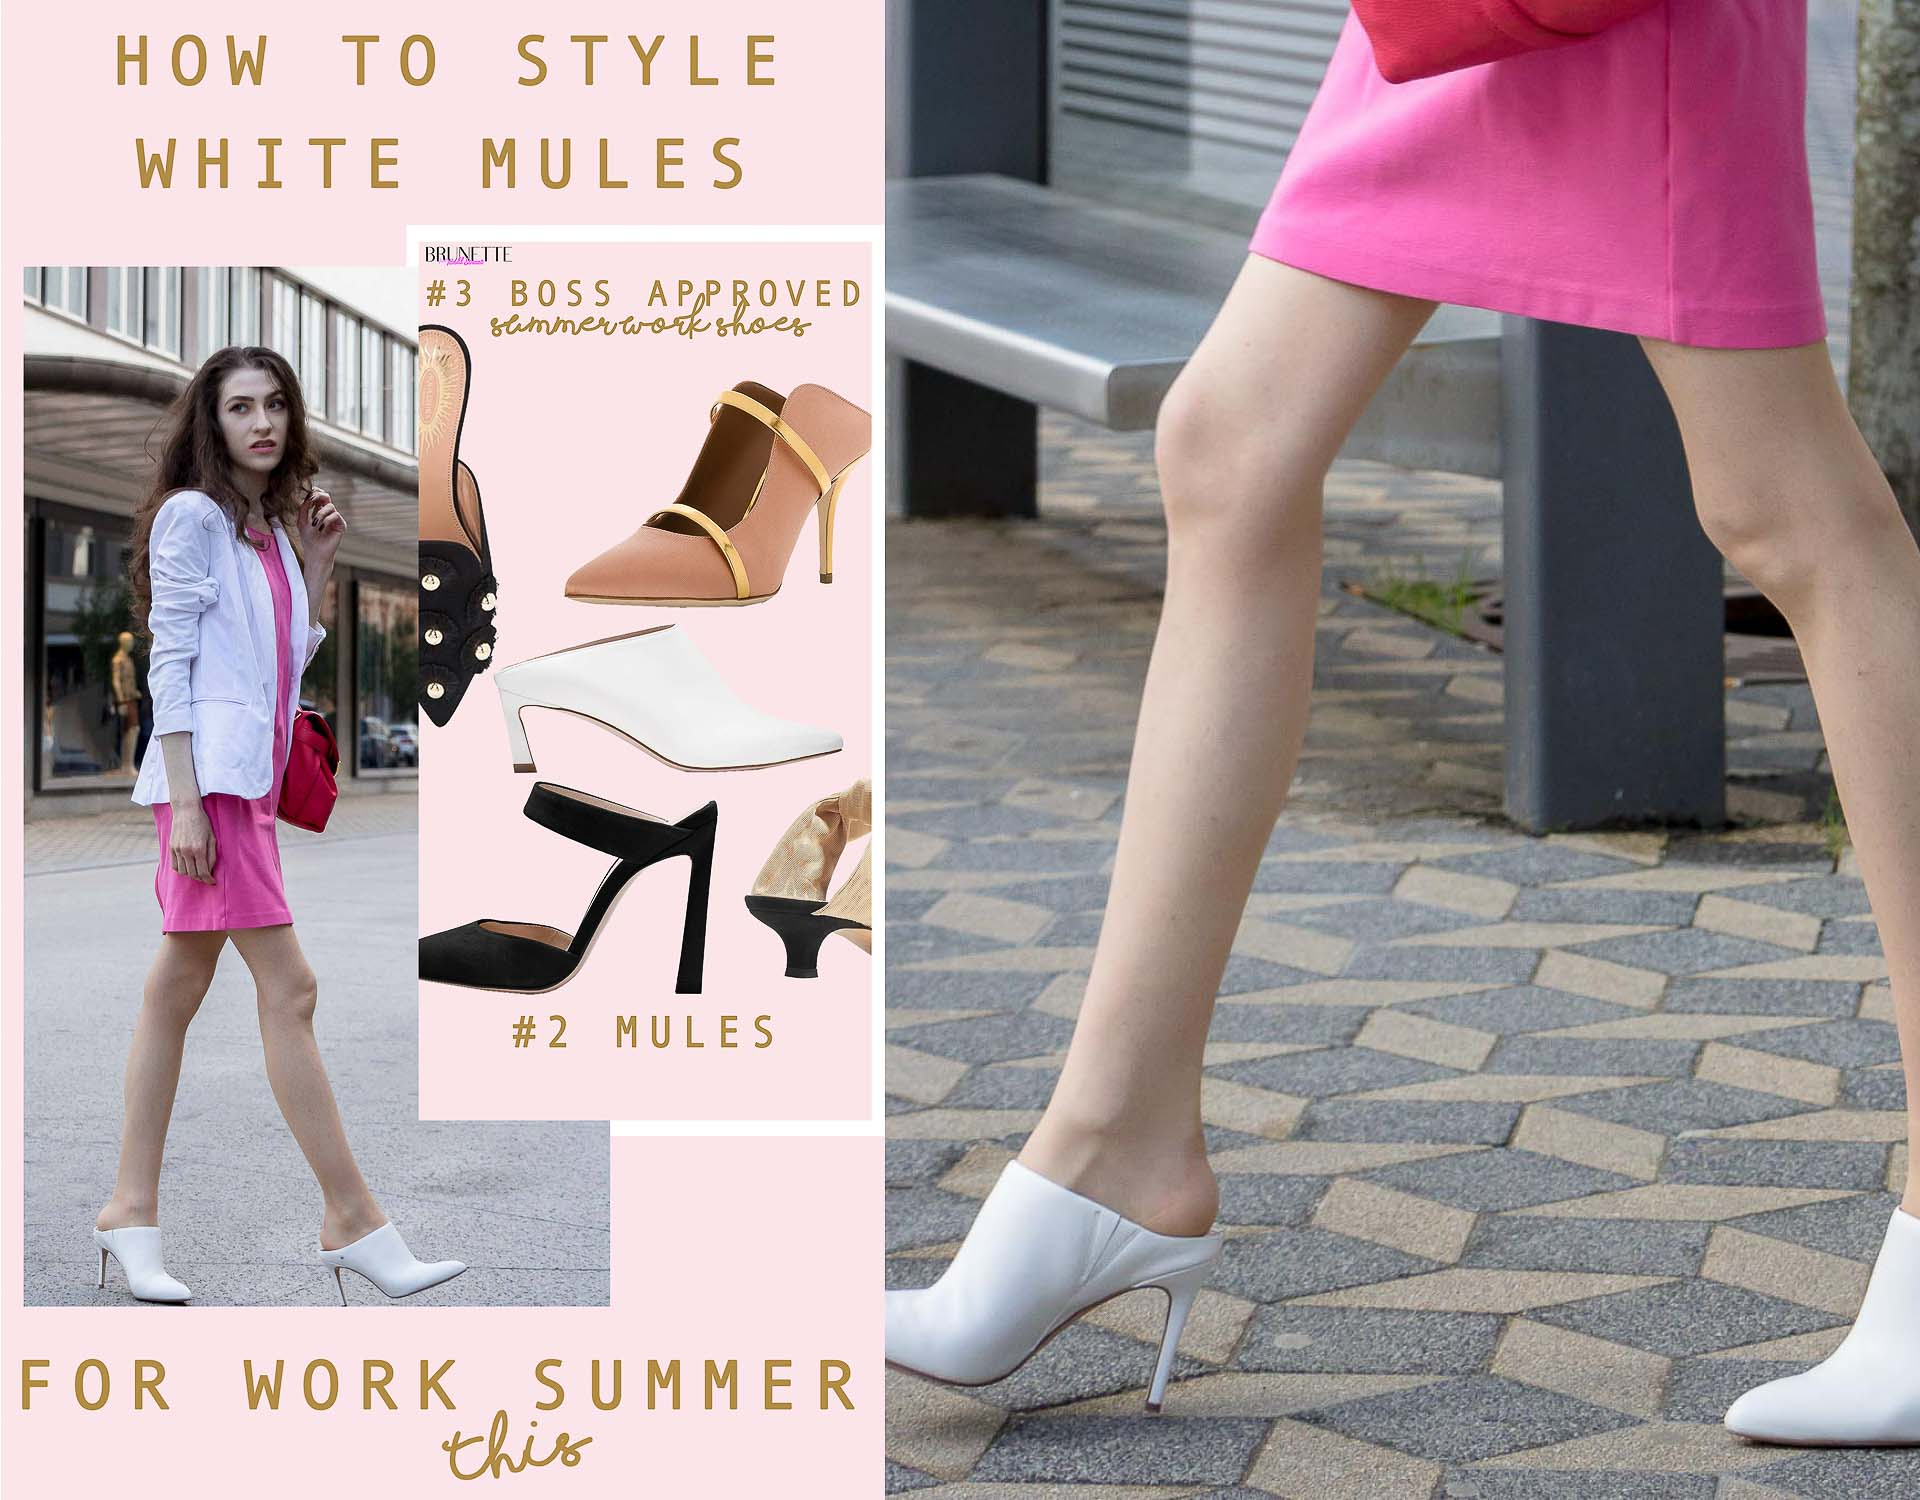 How to style white mules for work this summer to look put together